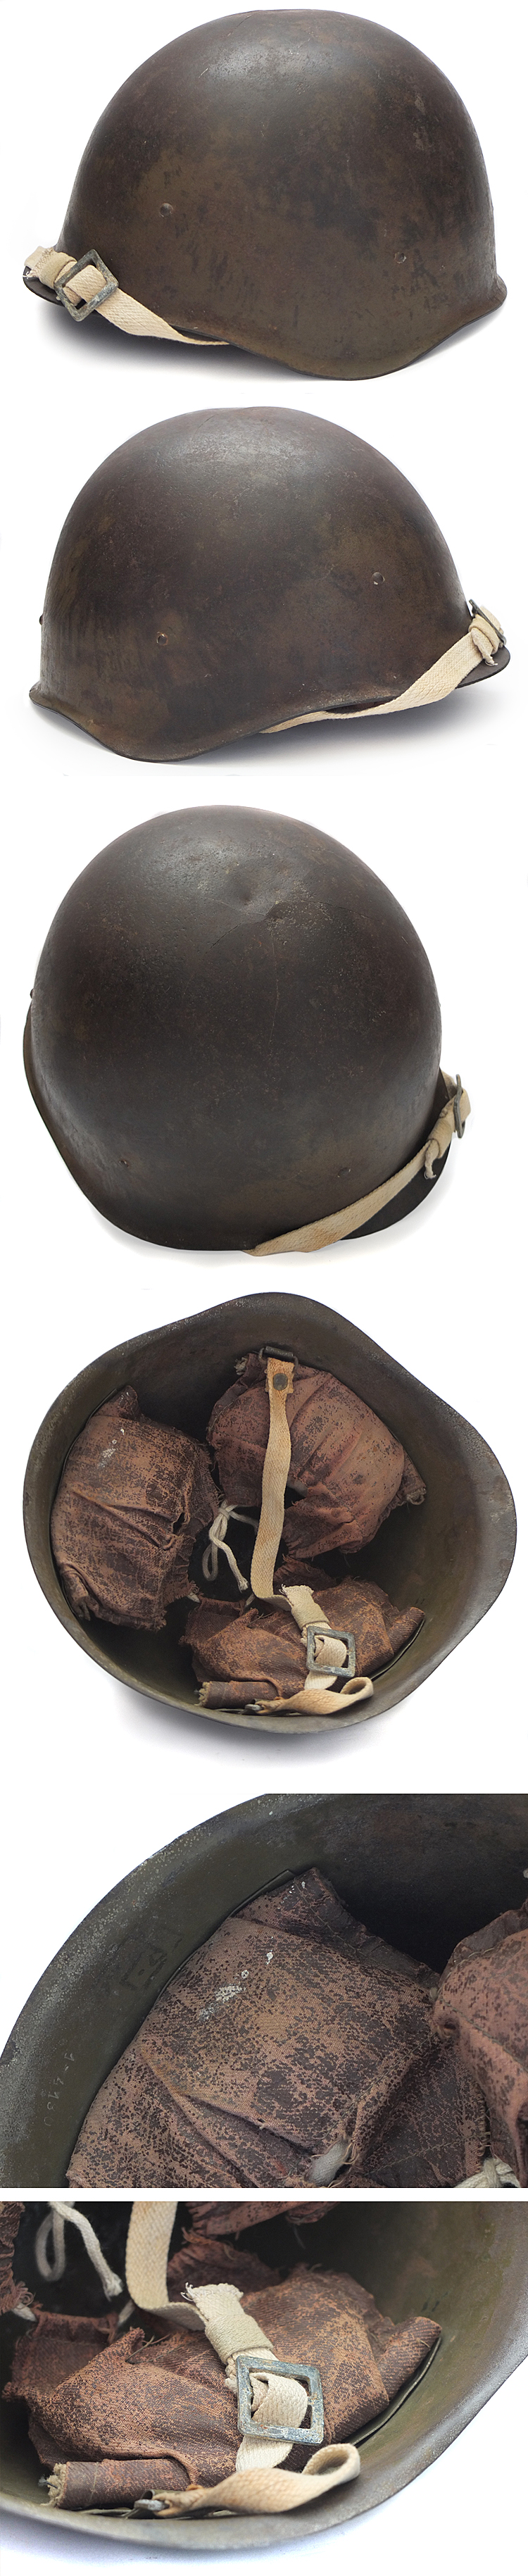 soviet ssh40 helmet for sale 1944 battle damaged